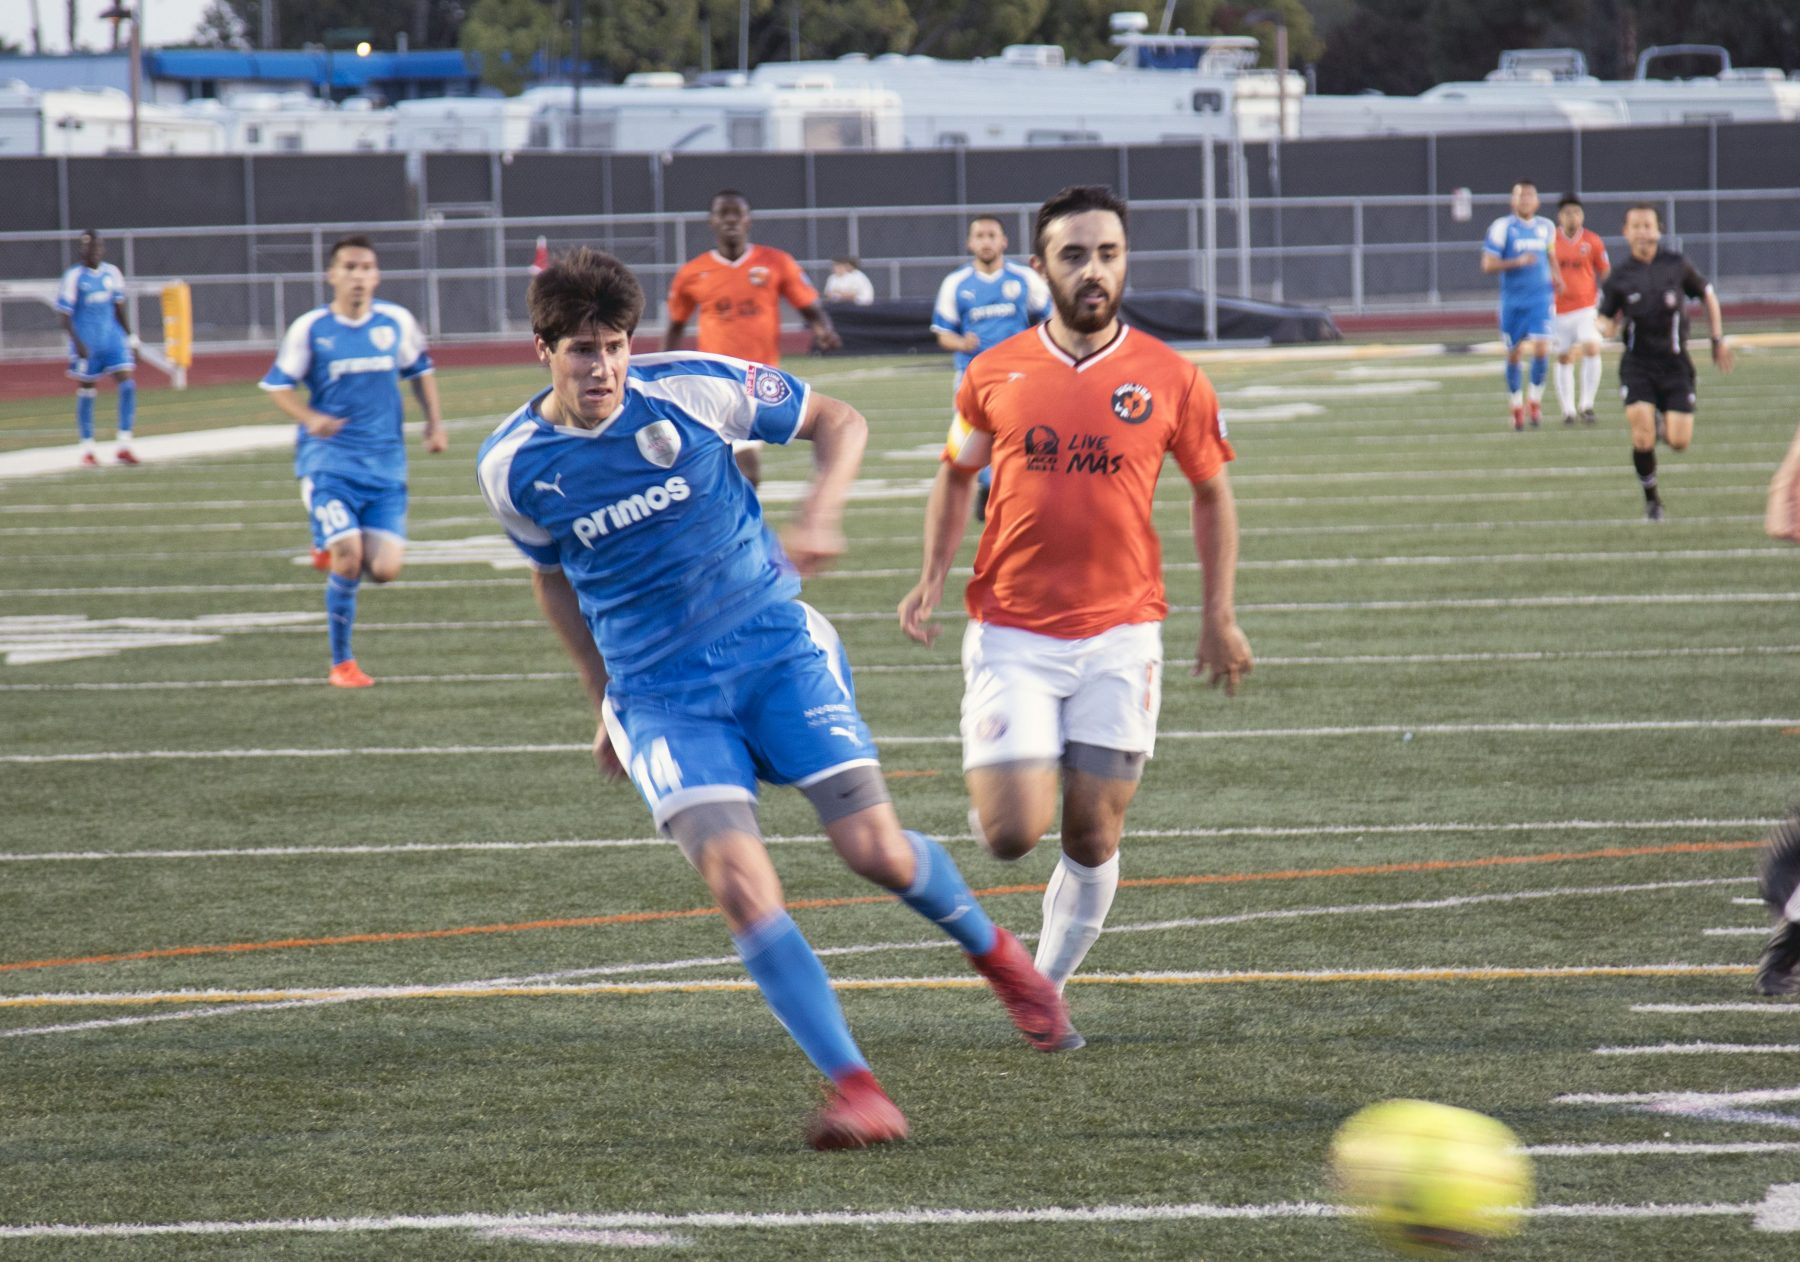 ASC San Diego Dominant in Win Over LA Wolves